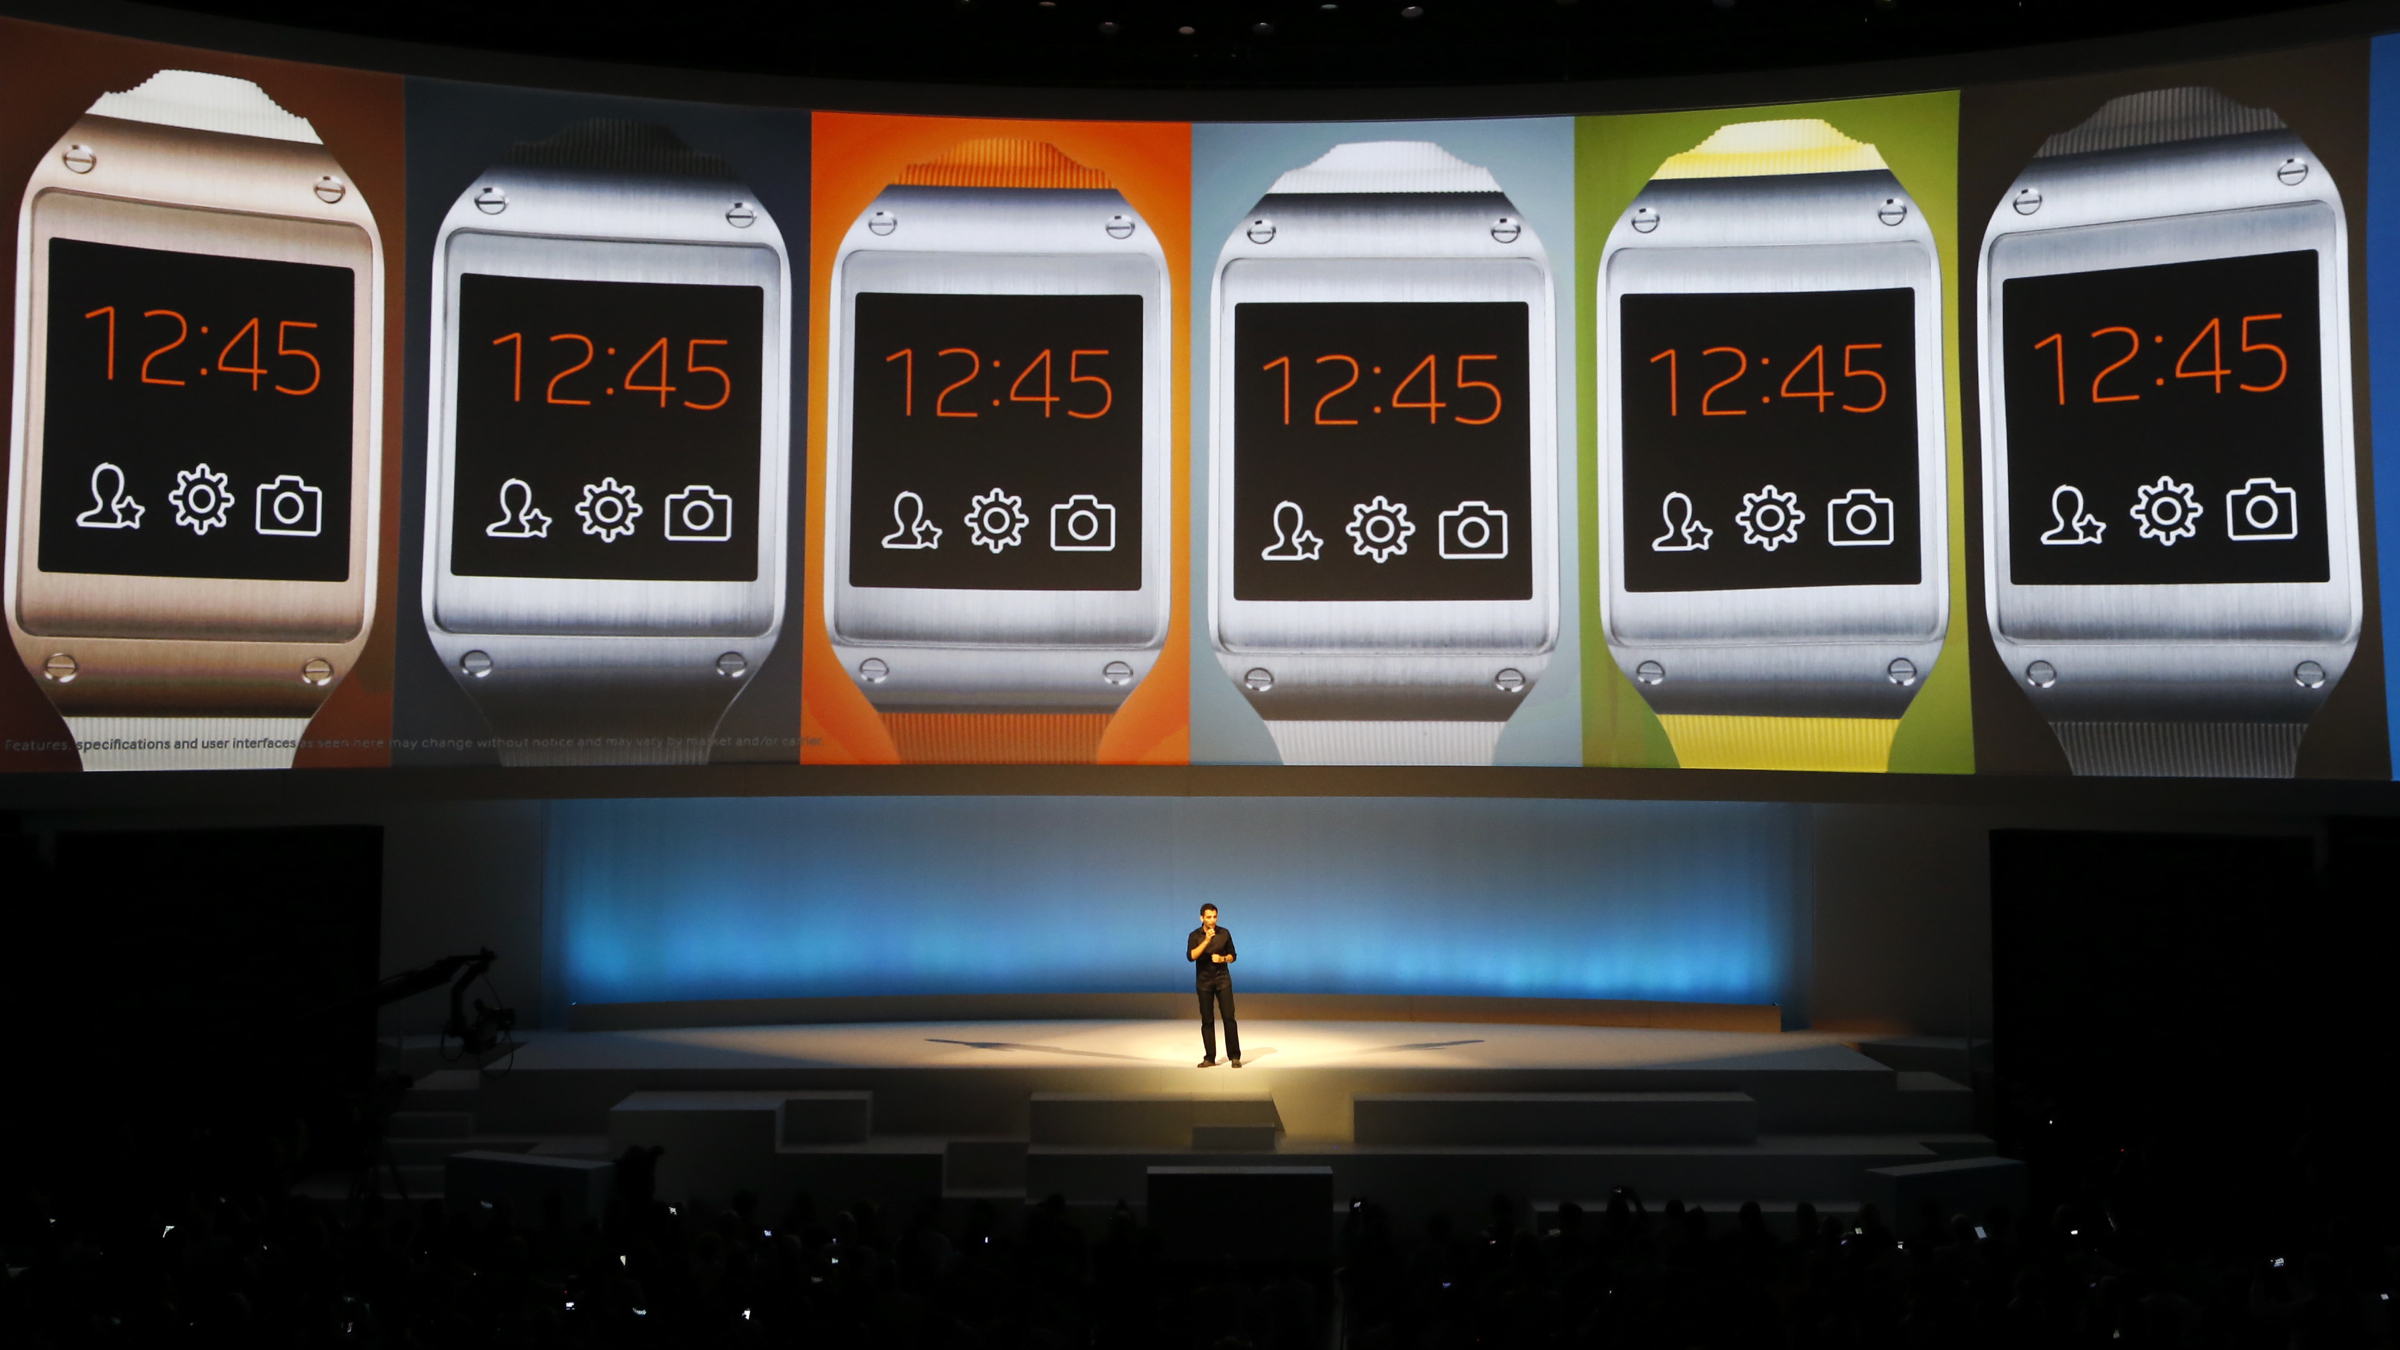 Pranav Mistry, head of the think tank team, Samsung Research America presents the Samsung Galaxy Gear smartwatch during its launch at the 'Samsung UNPACKED 2013 Episode 2' at the IFA consumer electronics fair in Berlin, September 4, 2013. The IFA consumer electronics and home appliances fair will open its doors to the public from September 6 till 11 in the German capital.            REUTERS/Fabrizio Bensch (GERMANY  - Tags: BUSINESS TELECOMS SCIENCE TECHNOLOGY)   - RTX137AJ